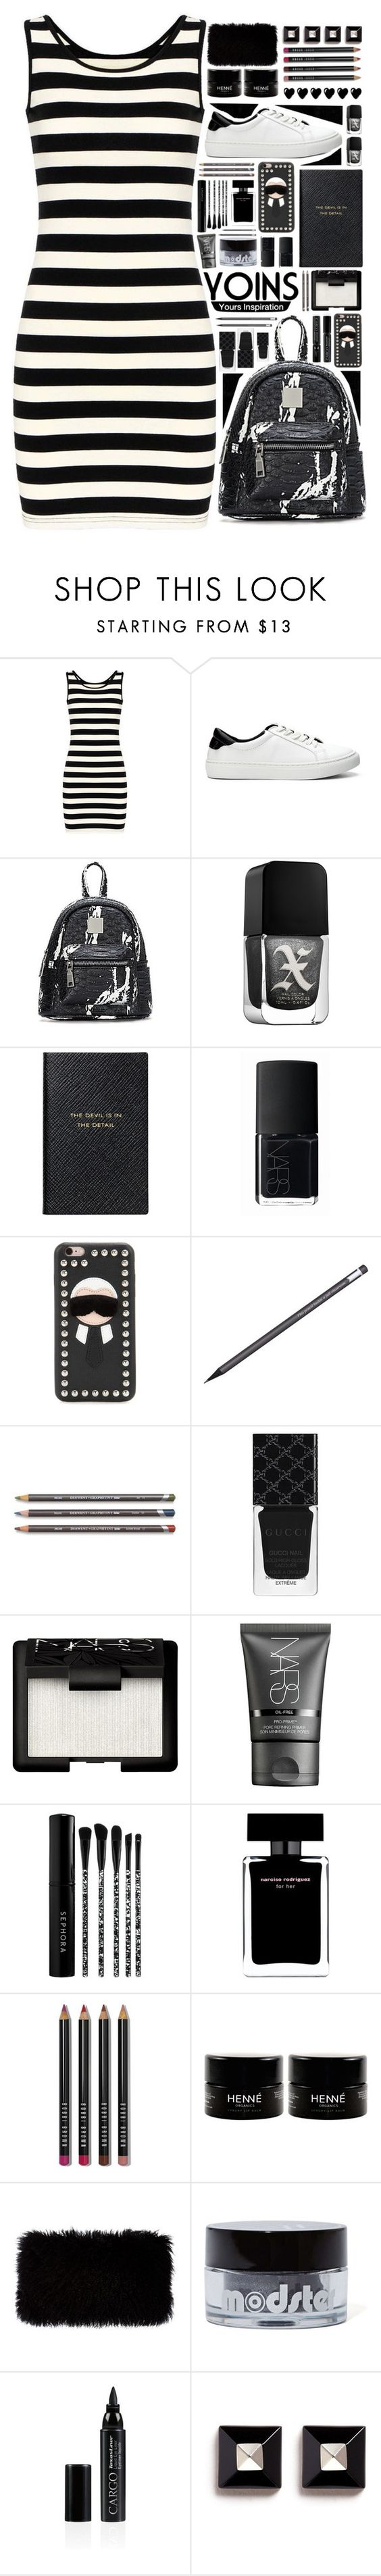 """""""YOINS #3"""" by arierrefatir ❤ liked on Polyvore featuring Formula X, Smythson, NARS Cosmetics, Fendi, Gucci, Sephora Collection, Narciso Rodriguez, Bobbi Brown Cosmetics, Donna Karan and Ardency Inn"""